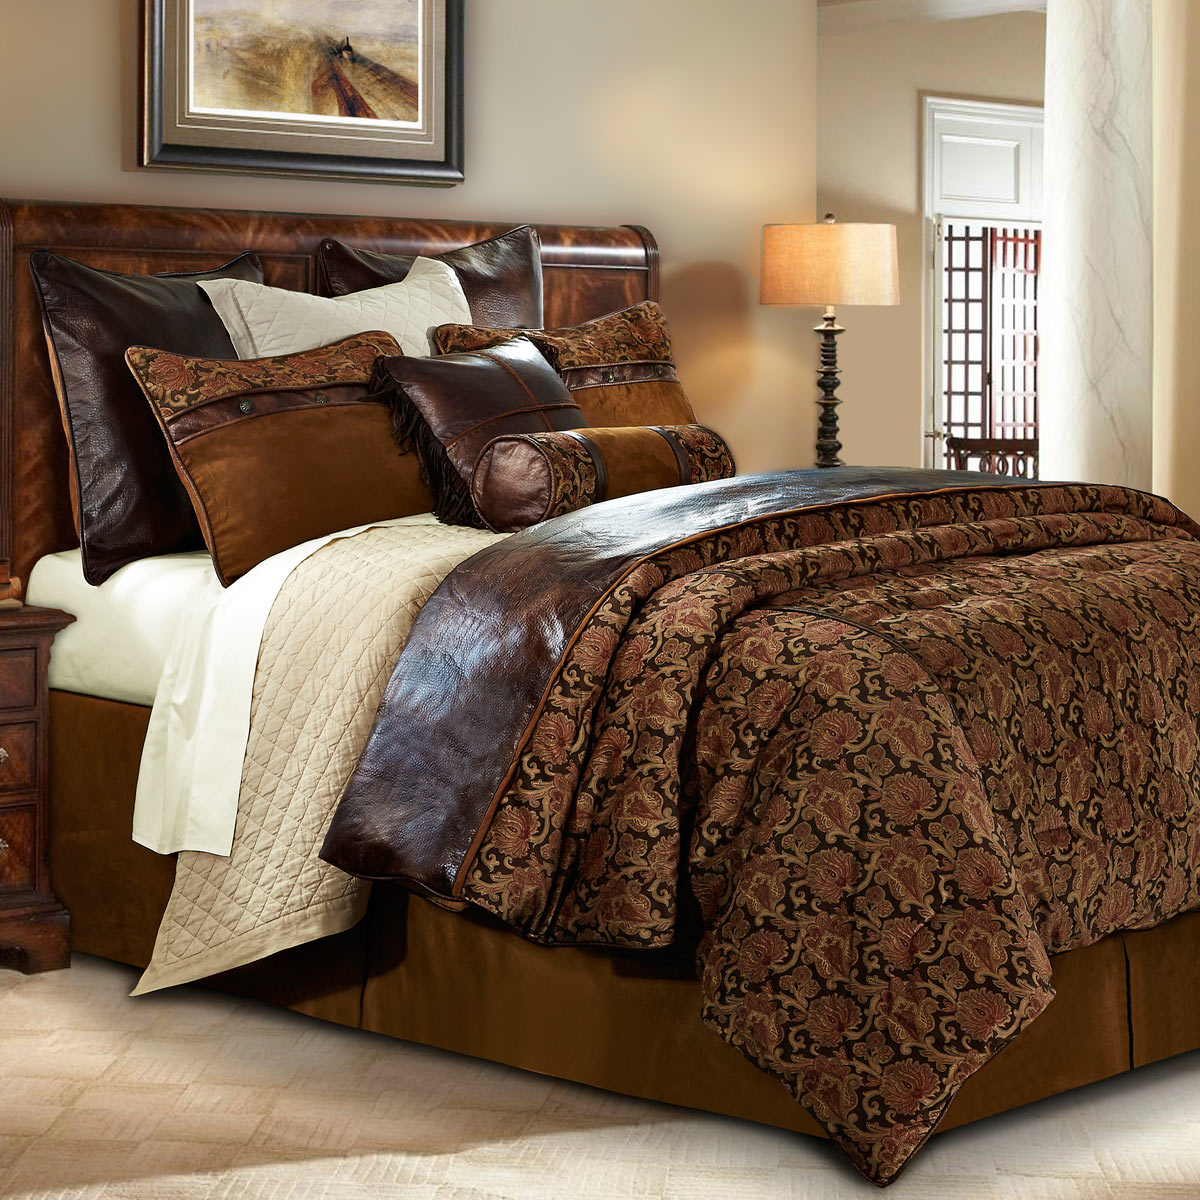 Western Bedding: King Size Austin Bed Set|Lone Star Western Decor